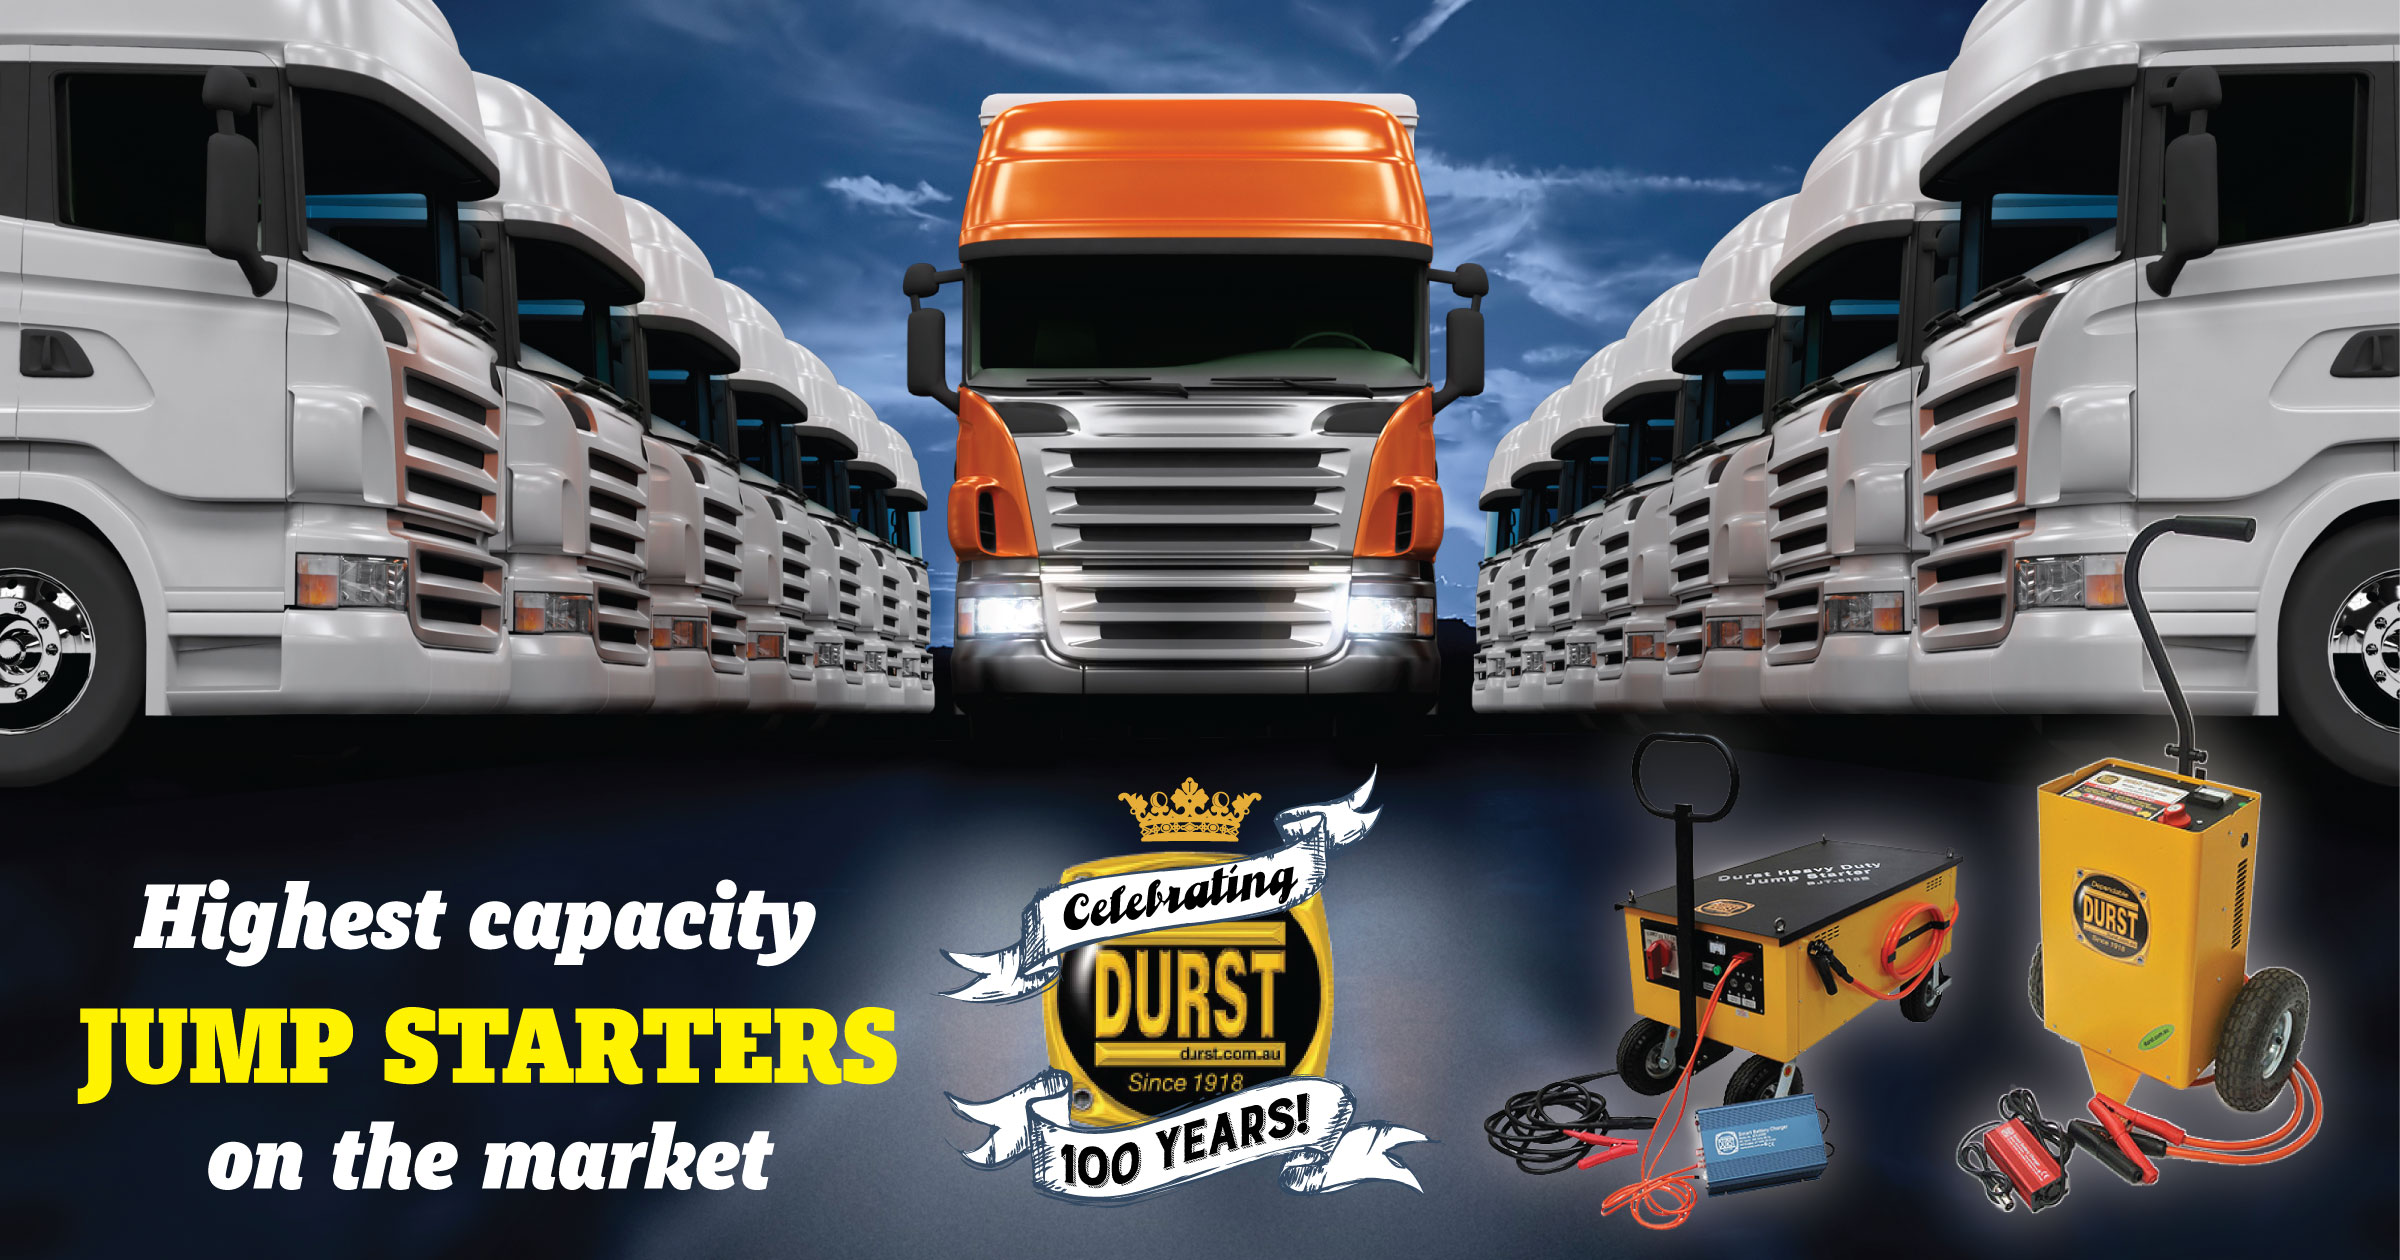 Durst supply highest capacity Jump Starter on the market for truck fleets